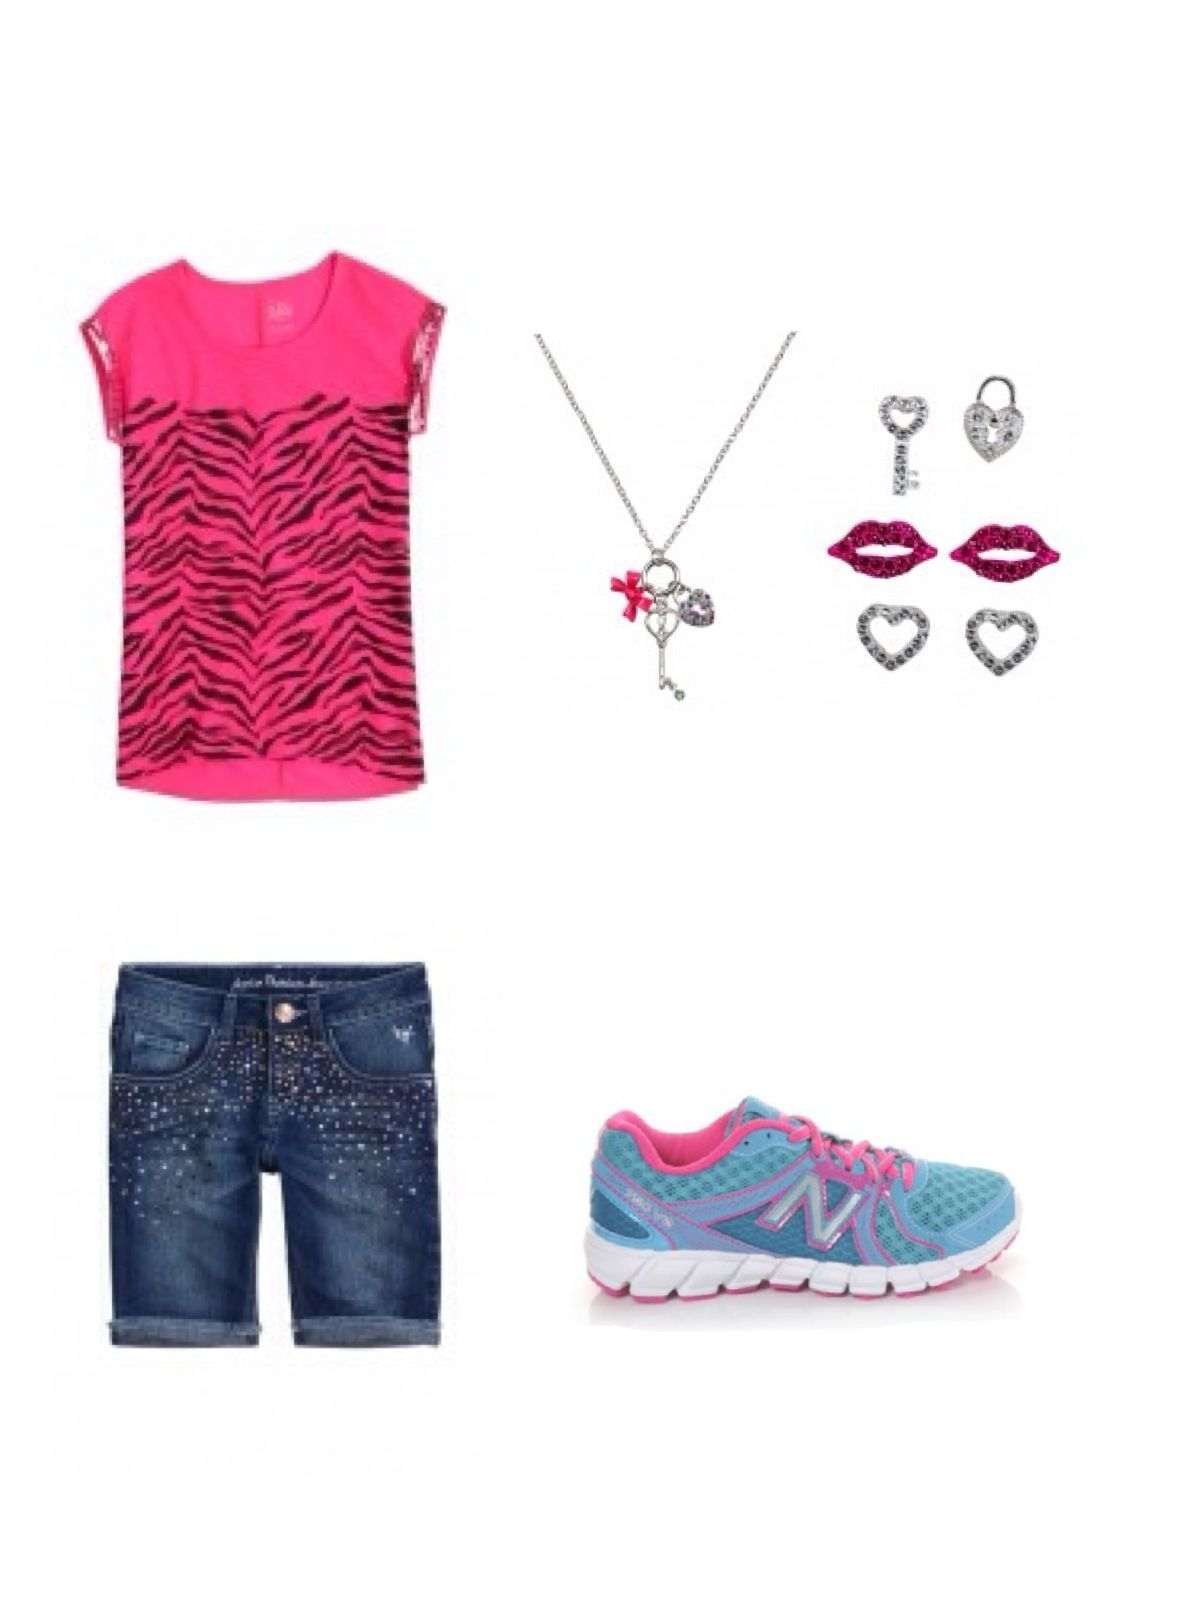 Middle School And Elementary School Back To School Outfits - Middle School And Elementary School Back To School Outfits